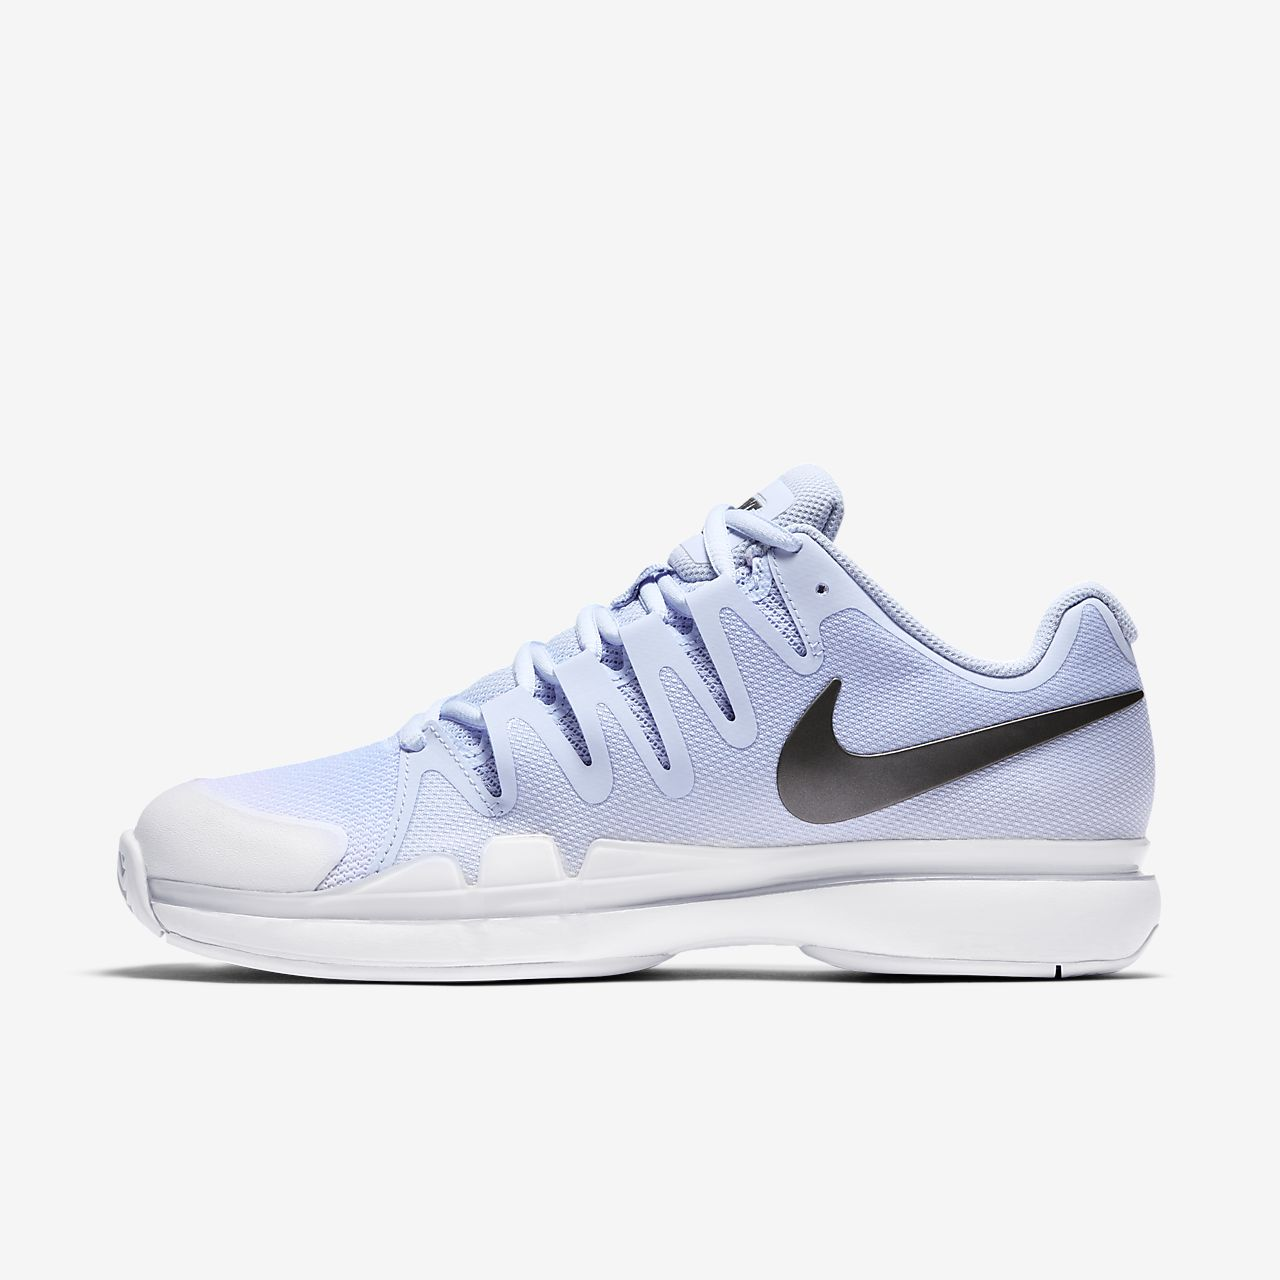 tennis shoes nike nz